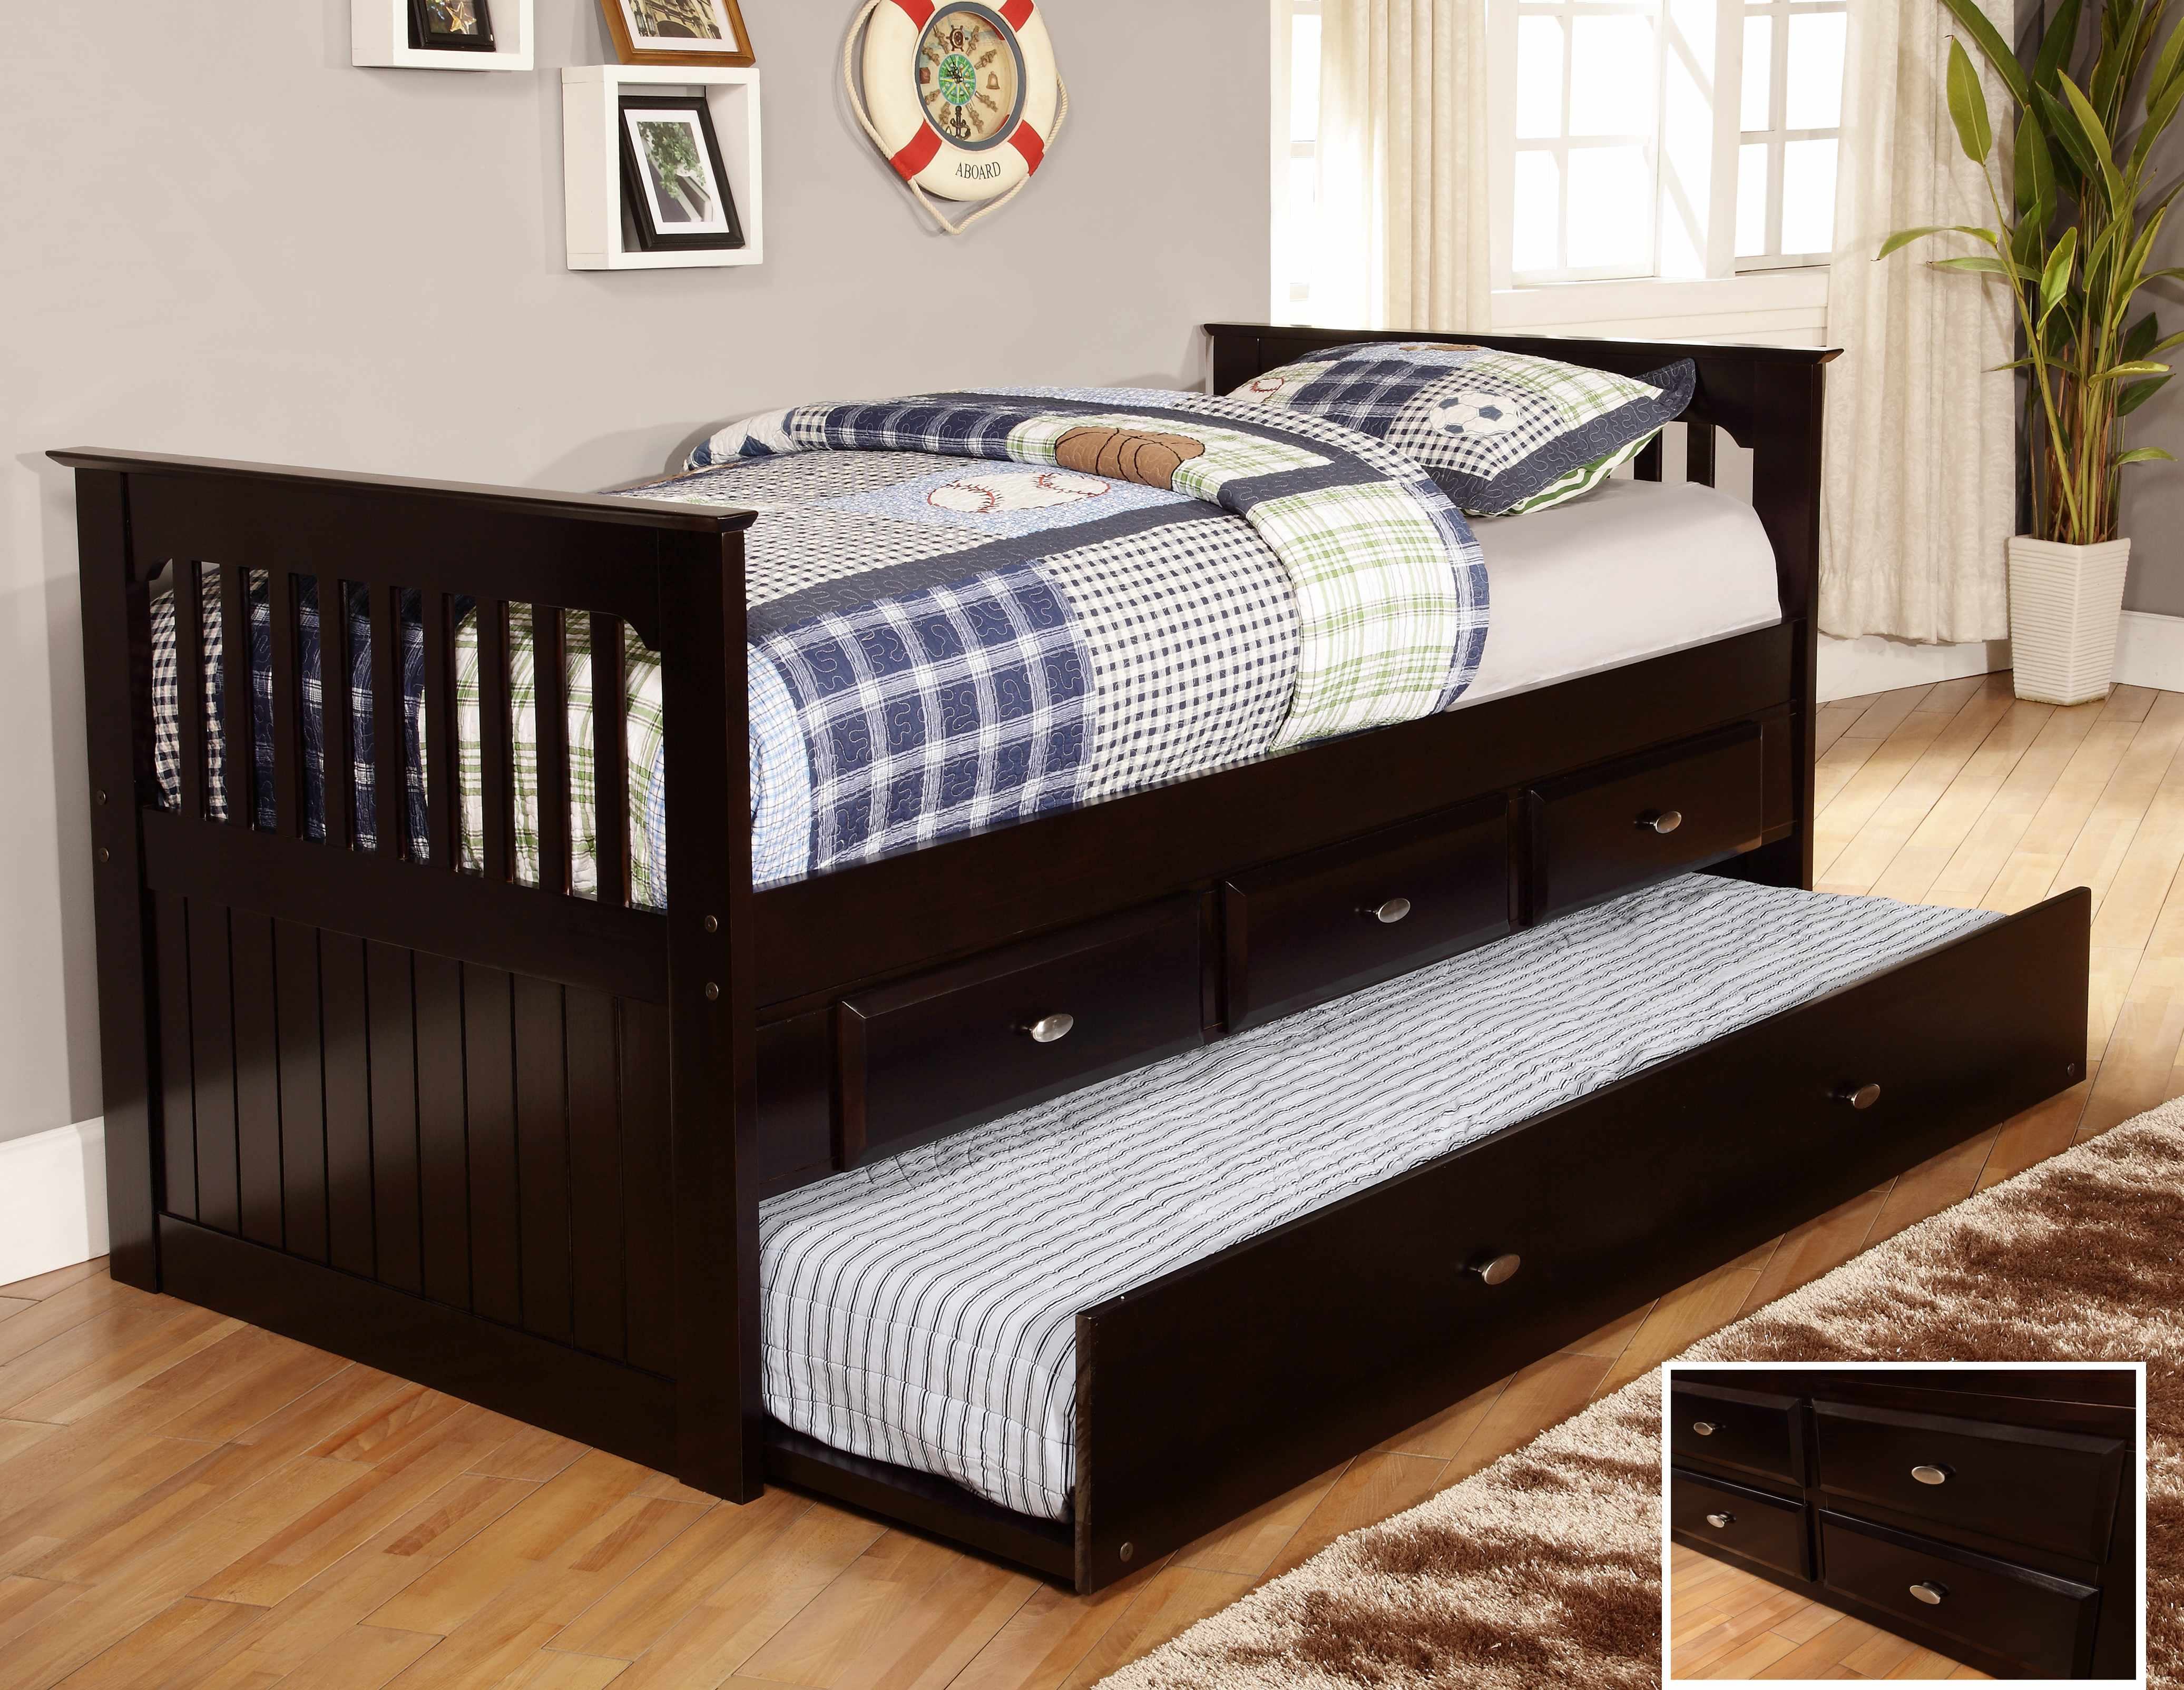 Discovery World Furniture Espresso Day Beds With Drawers Or Trundle Kfs Stores